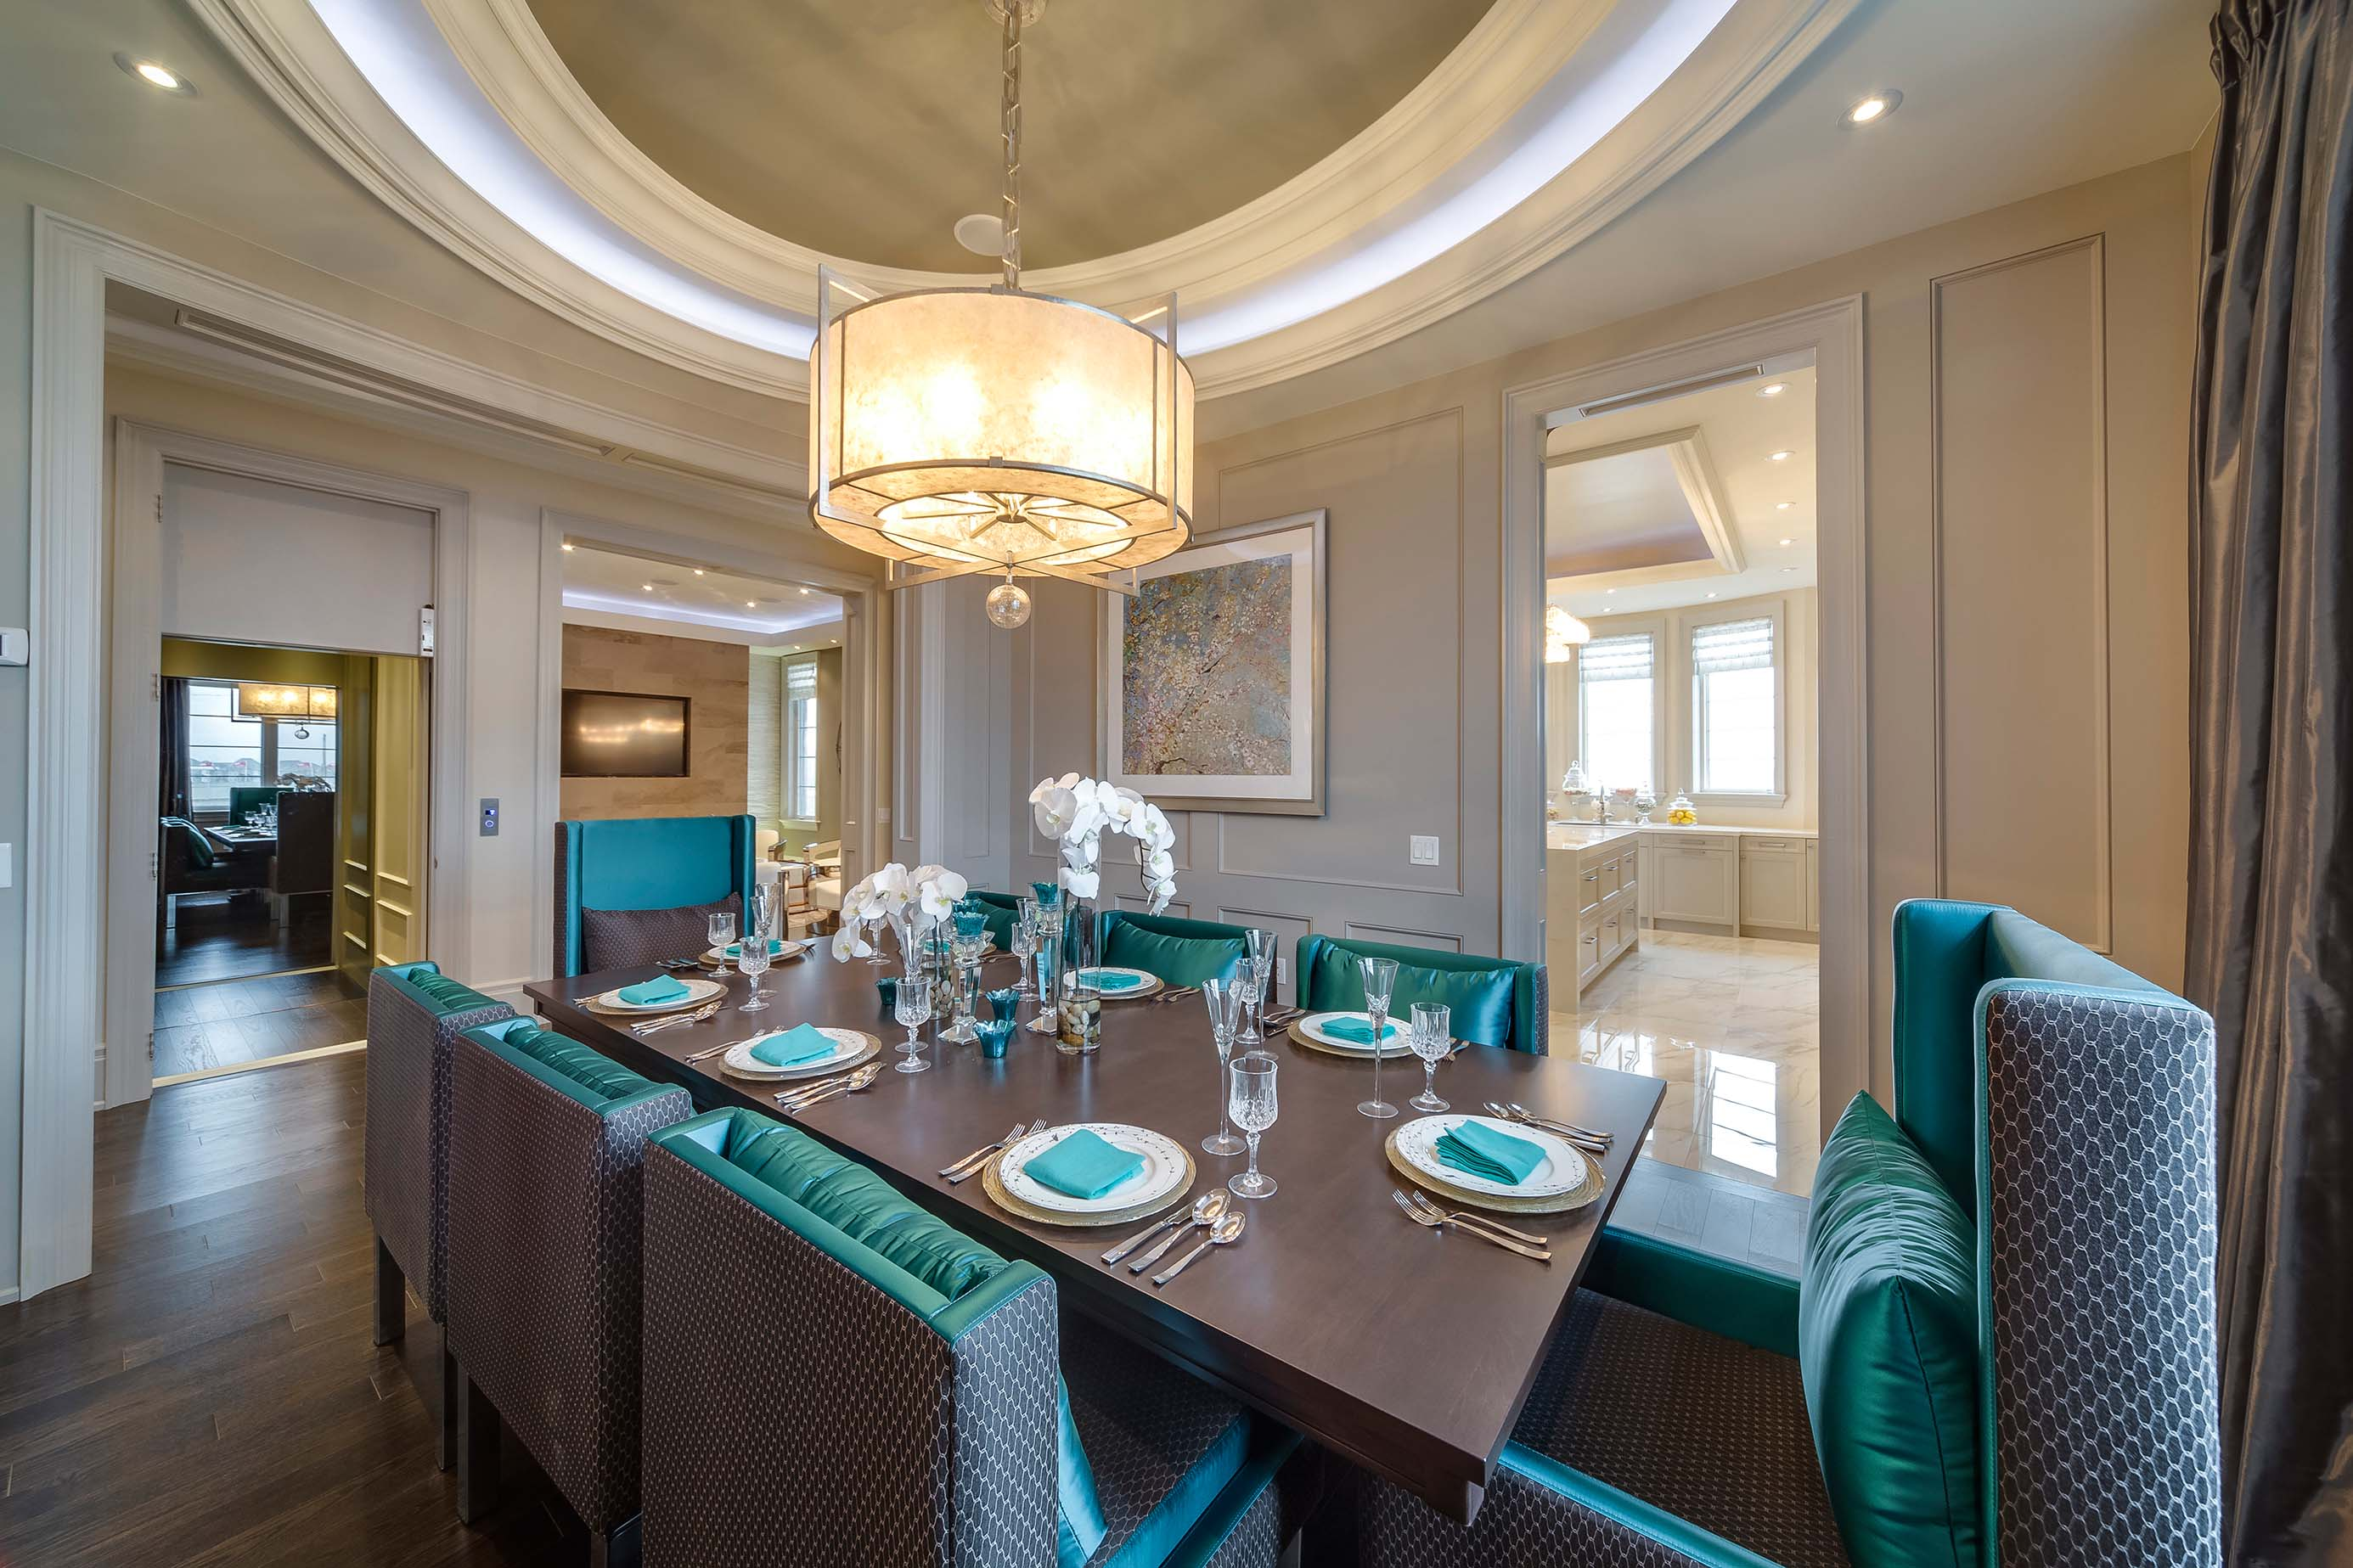 Latest Trends In Dining Room Lighting Part 16